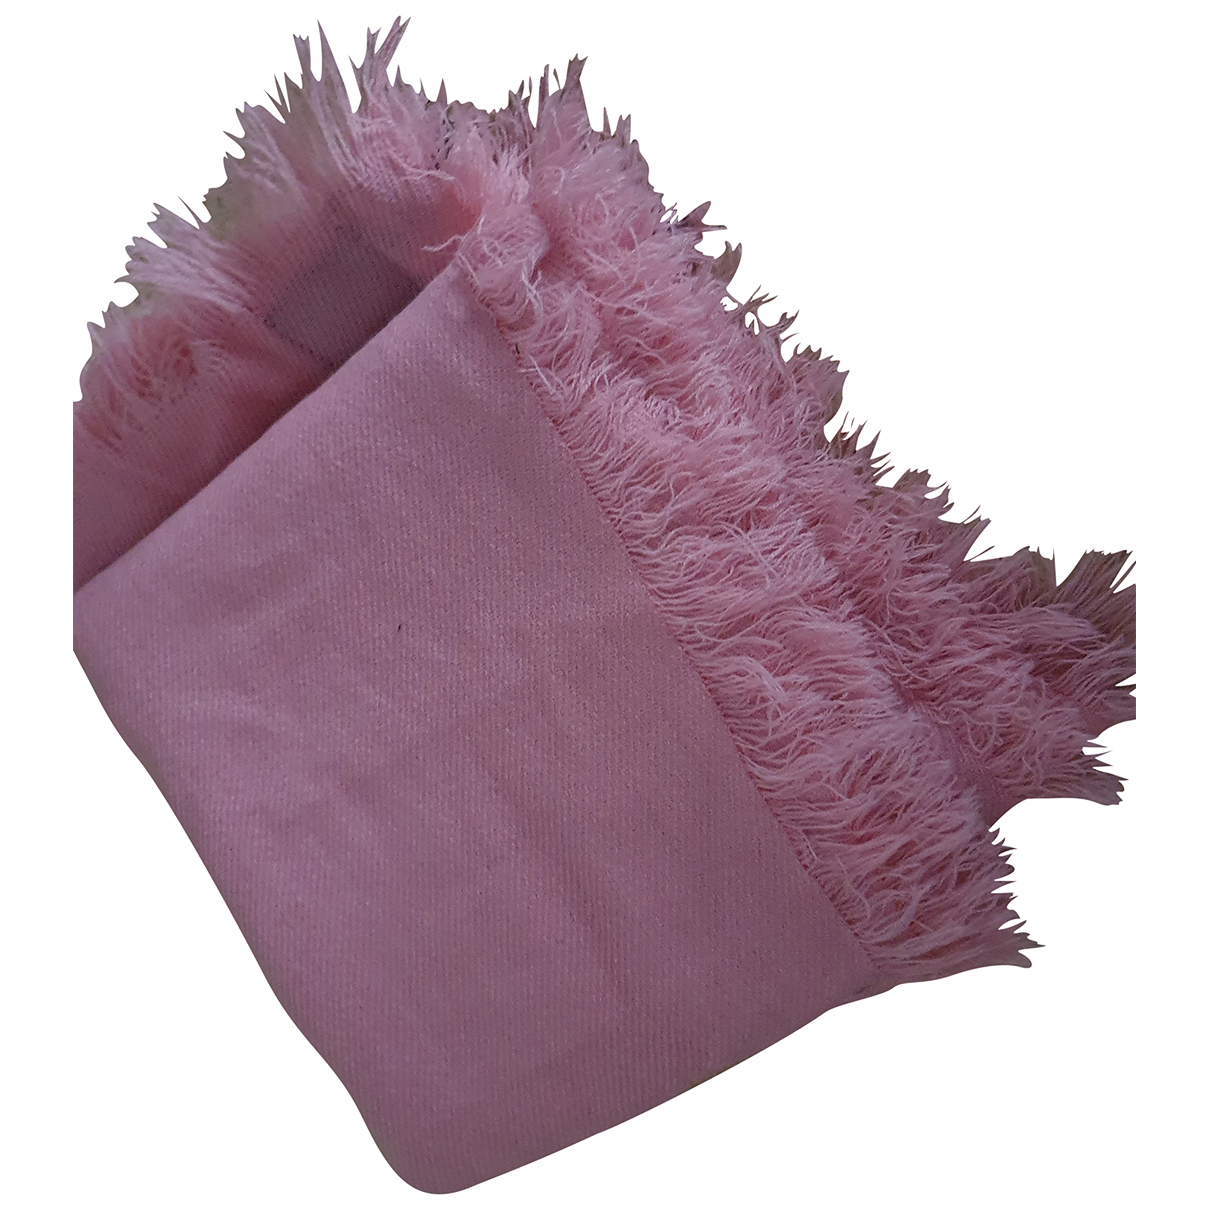 River Island N Pink Cotton scarf for Women N